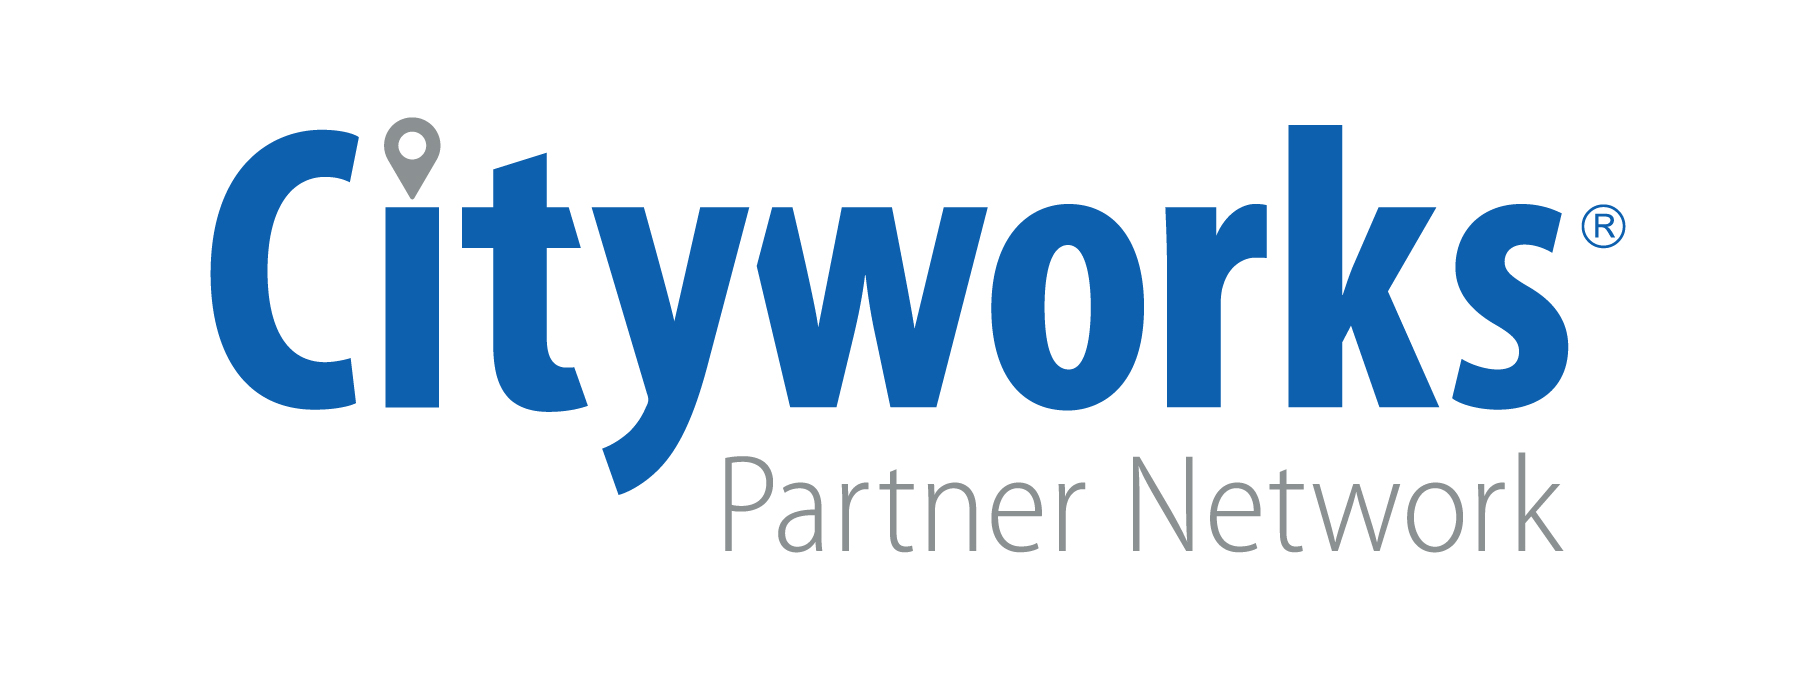 cityworks-partner-logo-valarm-industrial-internet-of-things-devices-sensors-remote-monitoring